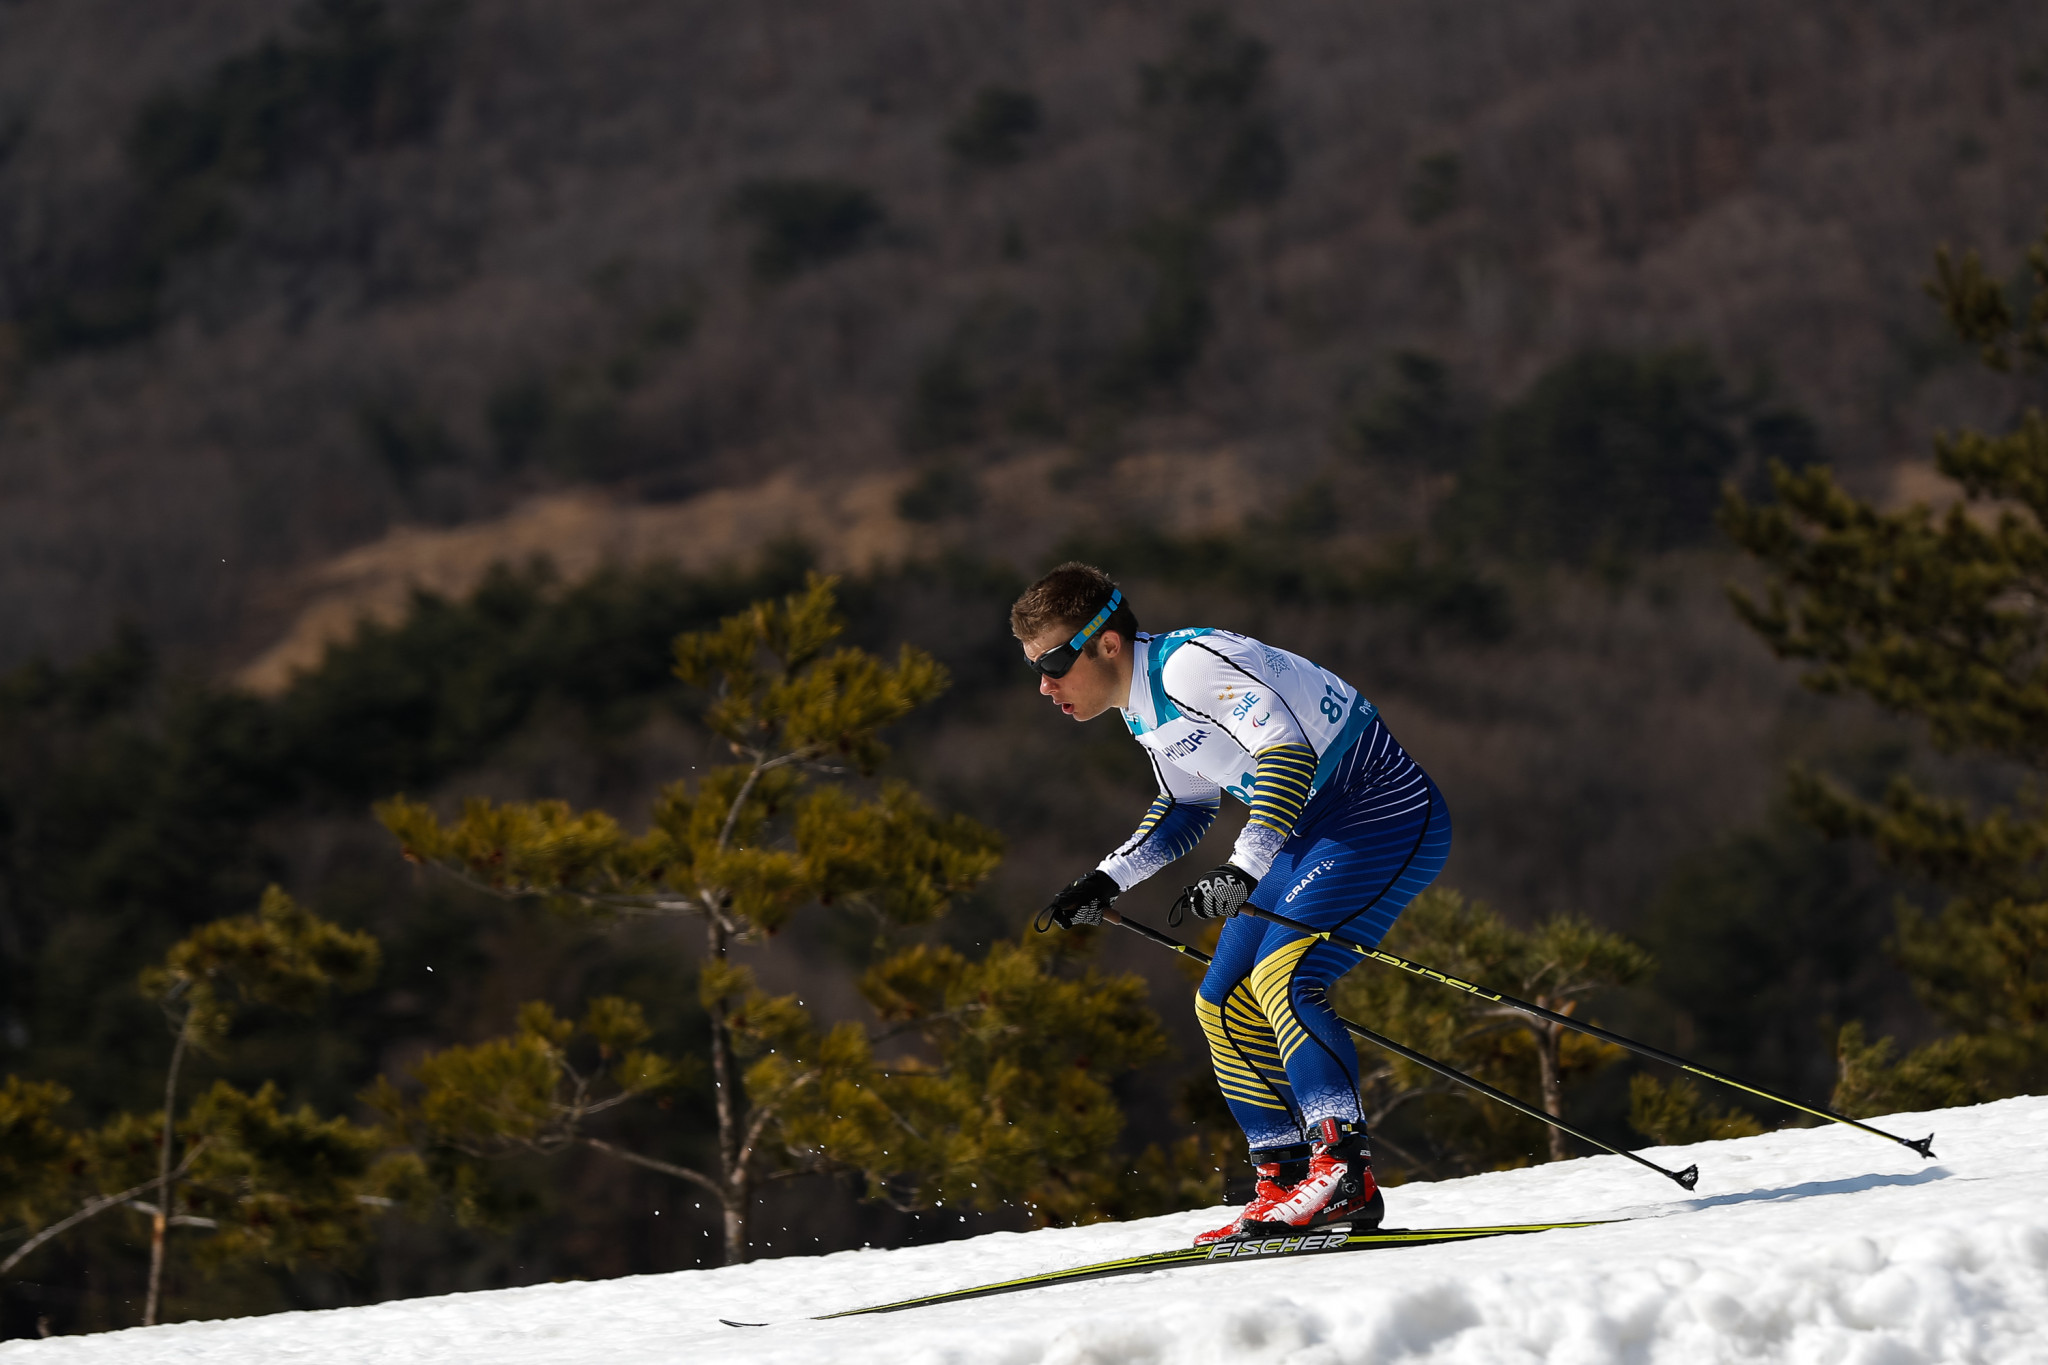 Bryntesson takes over as primary guide for five-time Paralympic medallist Modin